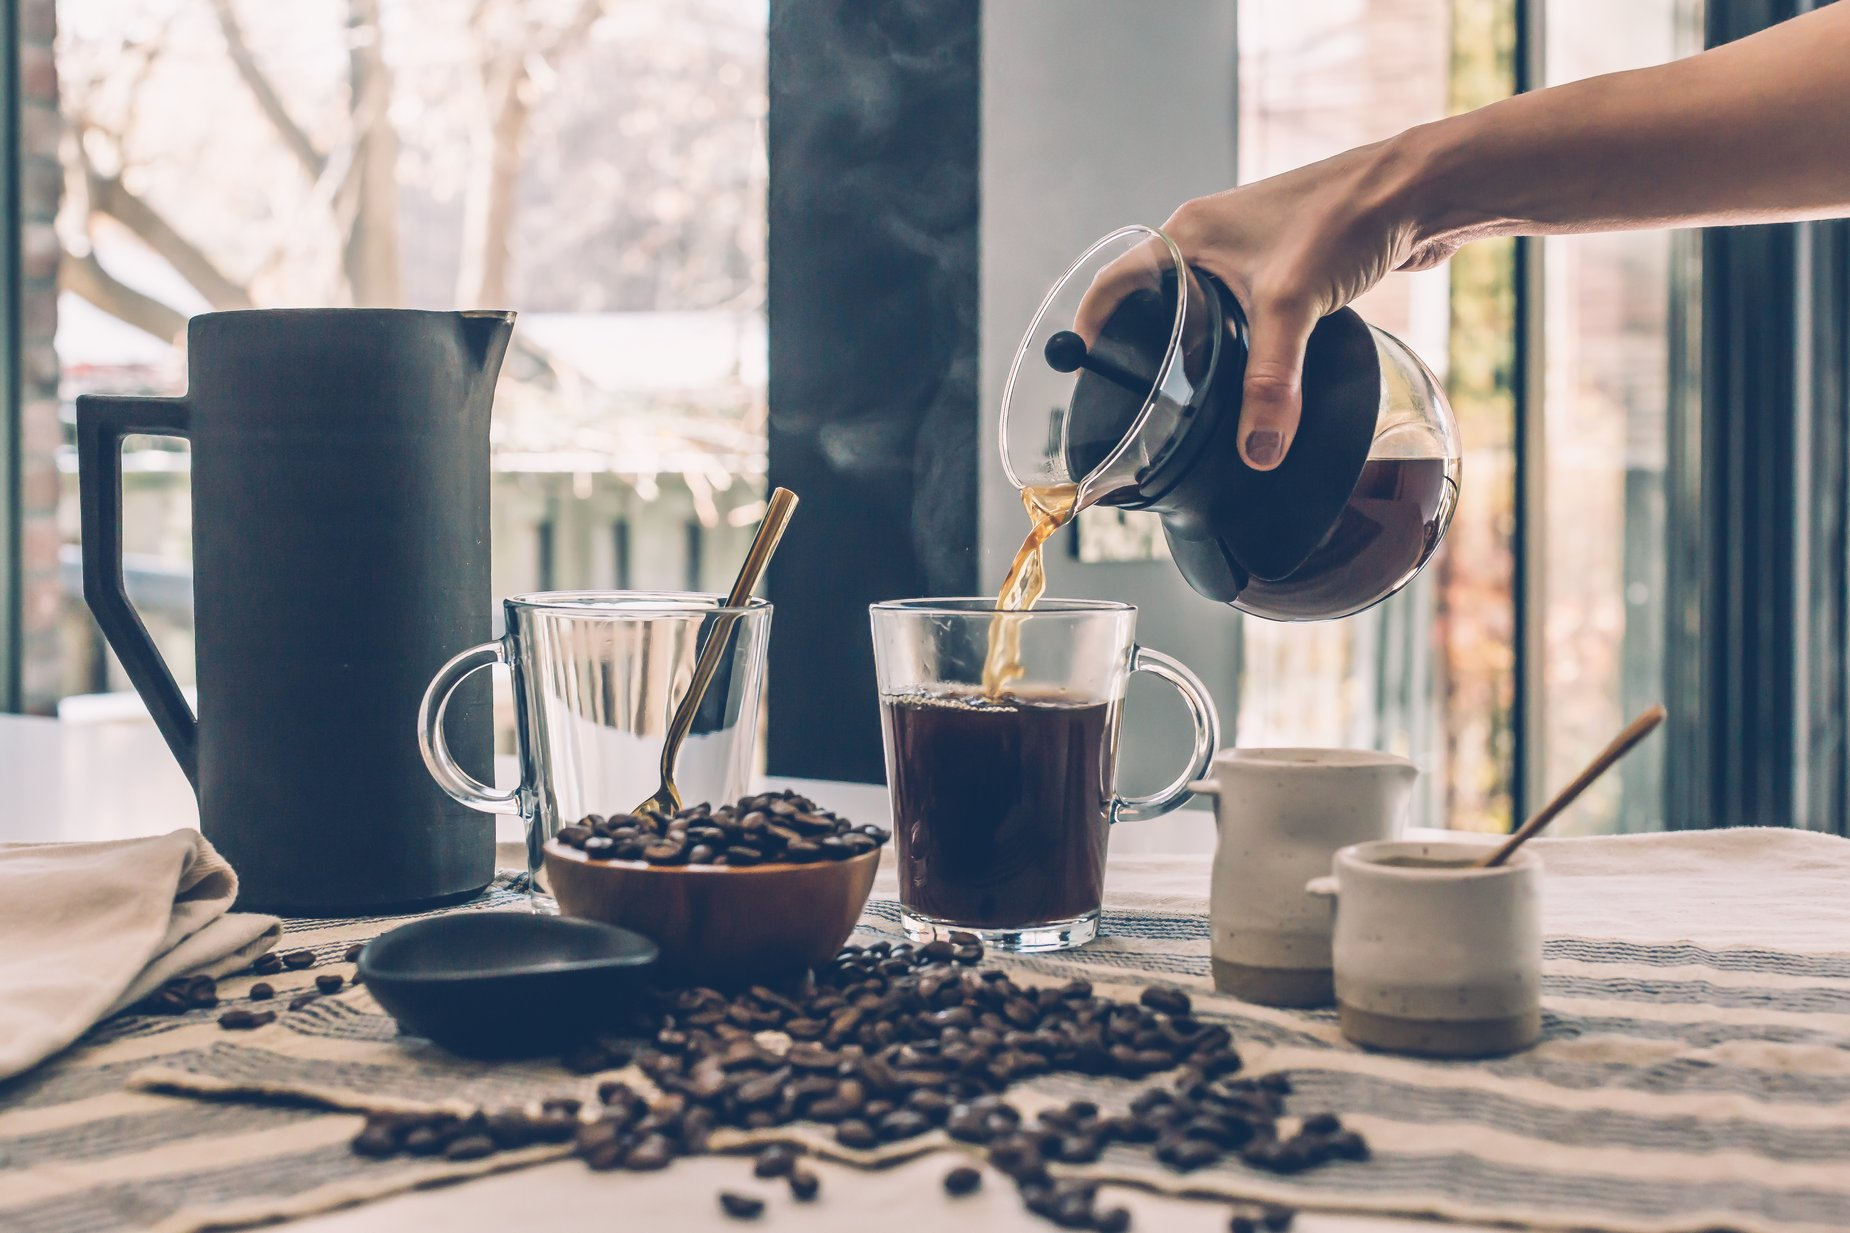 Understand Coffee: Upgrading your life with Specialty Coffee